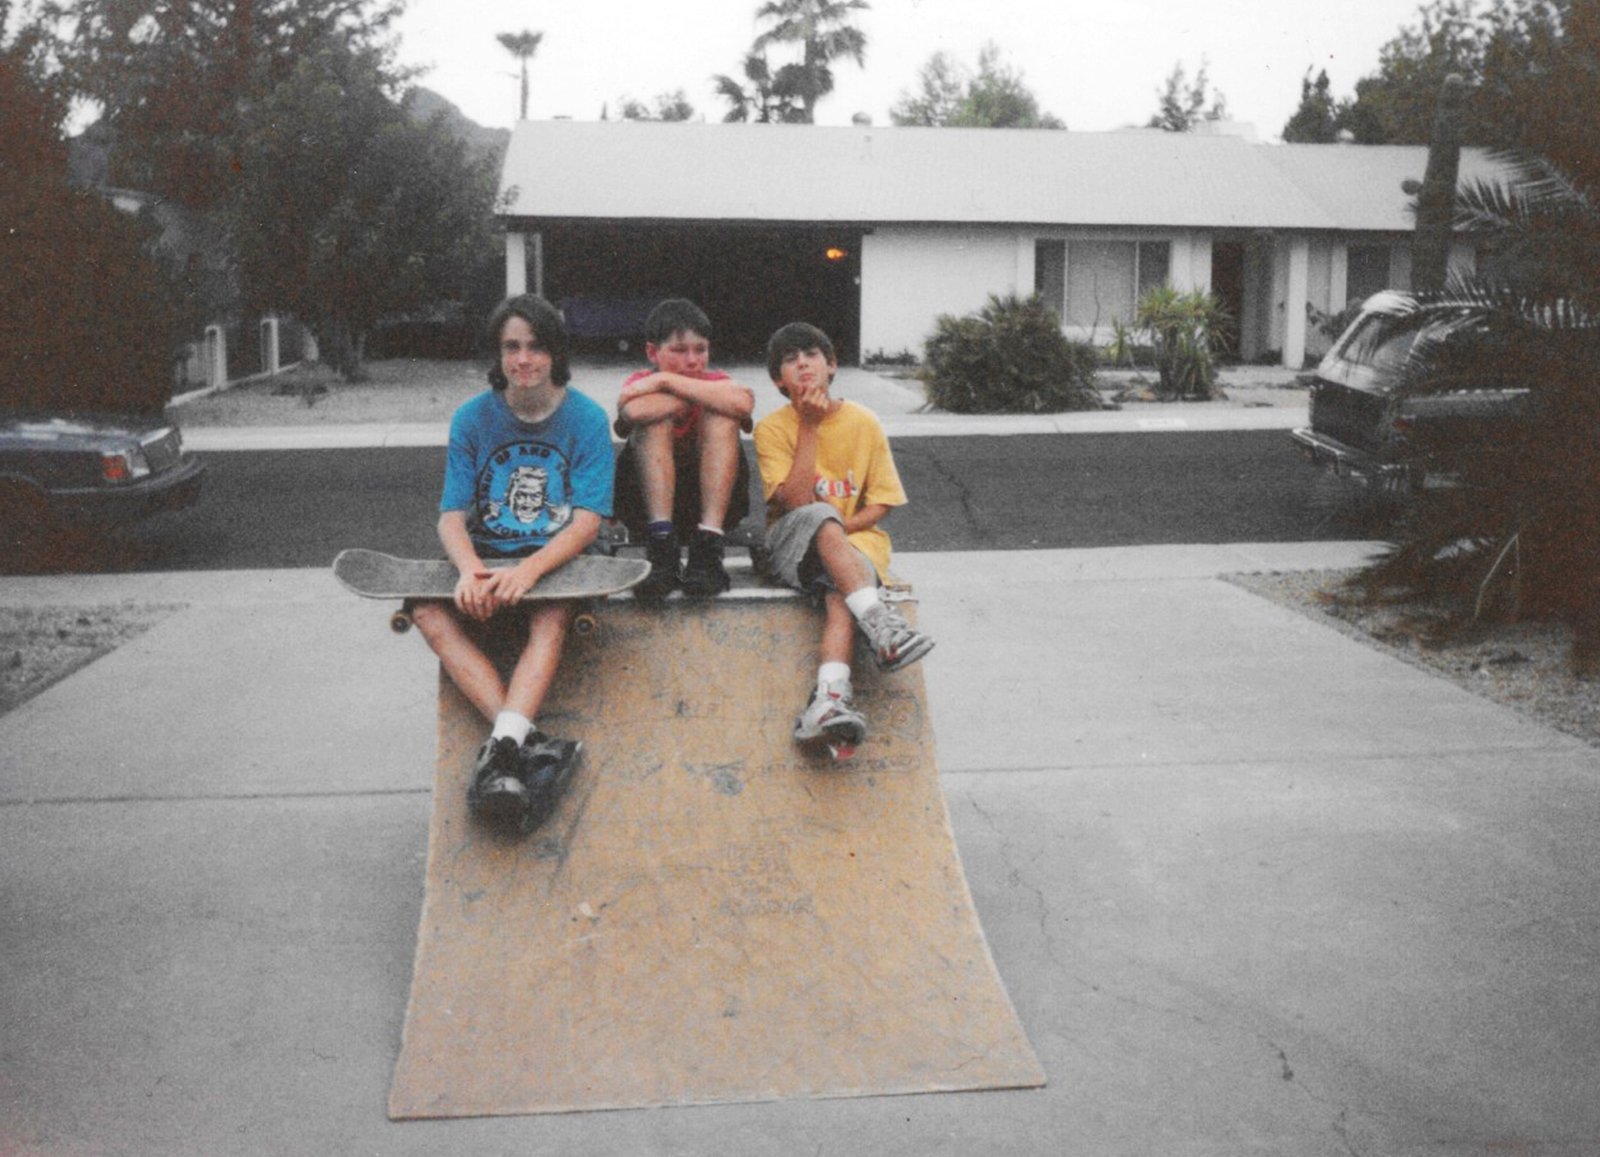 1989, Scottsdale Arizona  Scotty Copalman, his brother Joe and I in their driveway. Scotty was on Blind flow at this time, first time I was exposed to sponsors rippers. Scotty was so sick, he re surfaced on the first Zero lineup